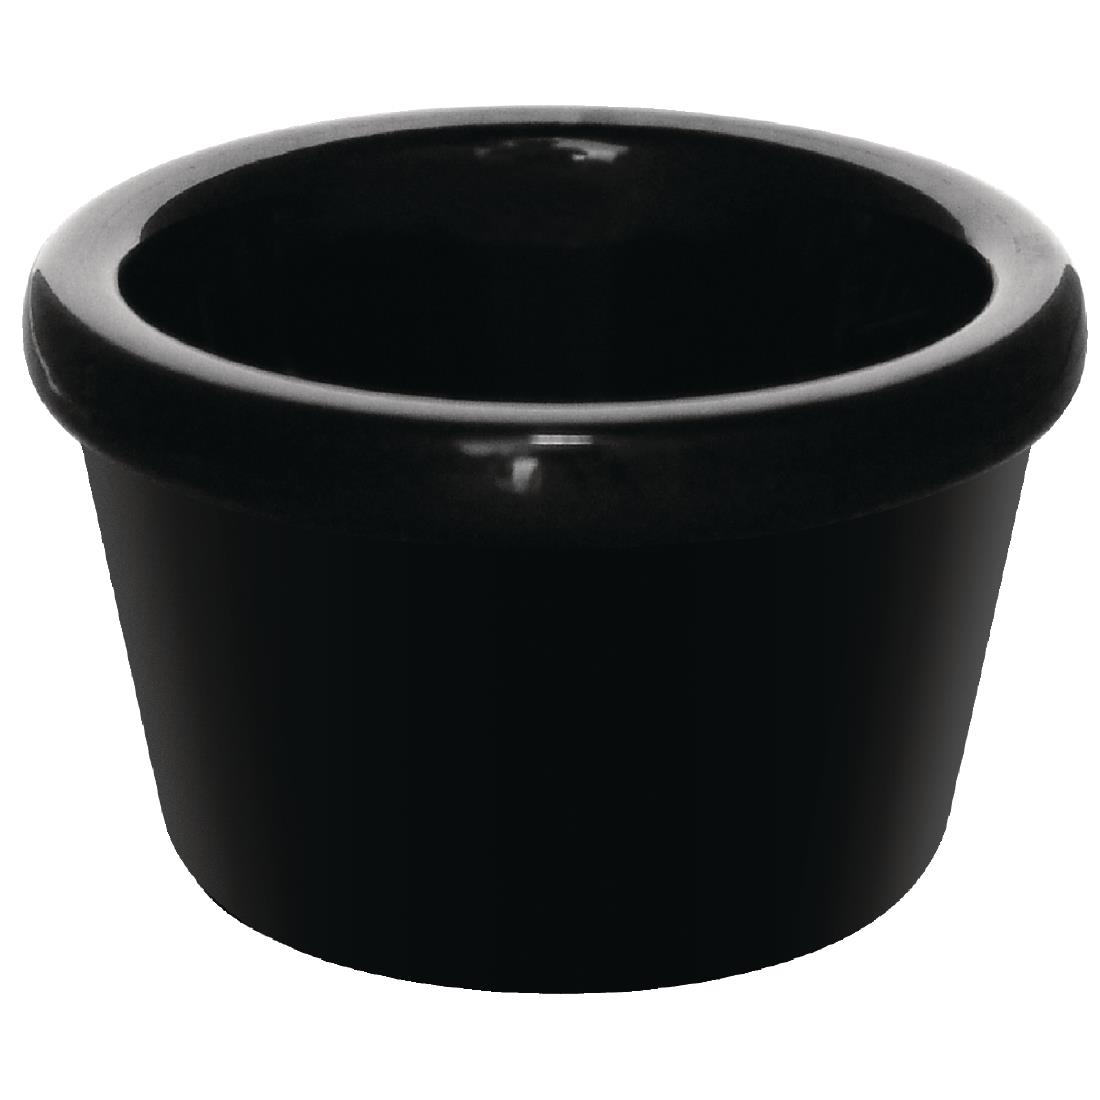 Smooth Ramekin - Black